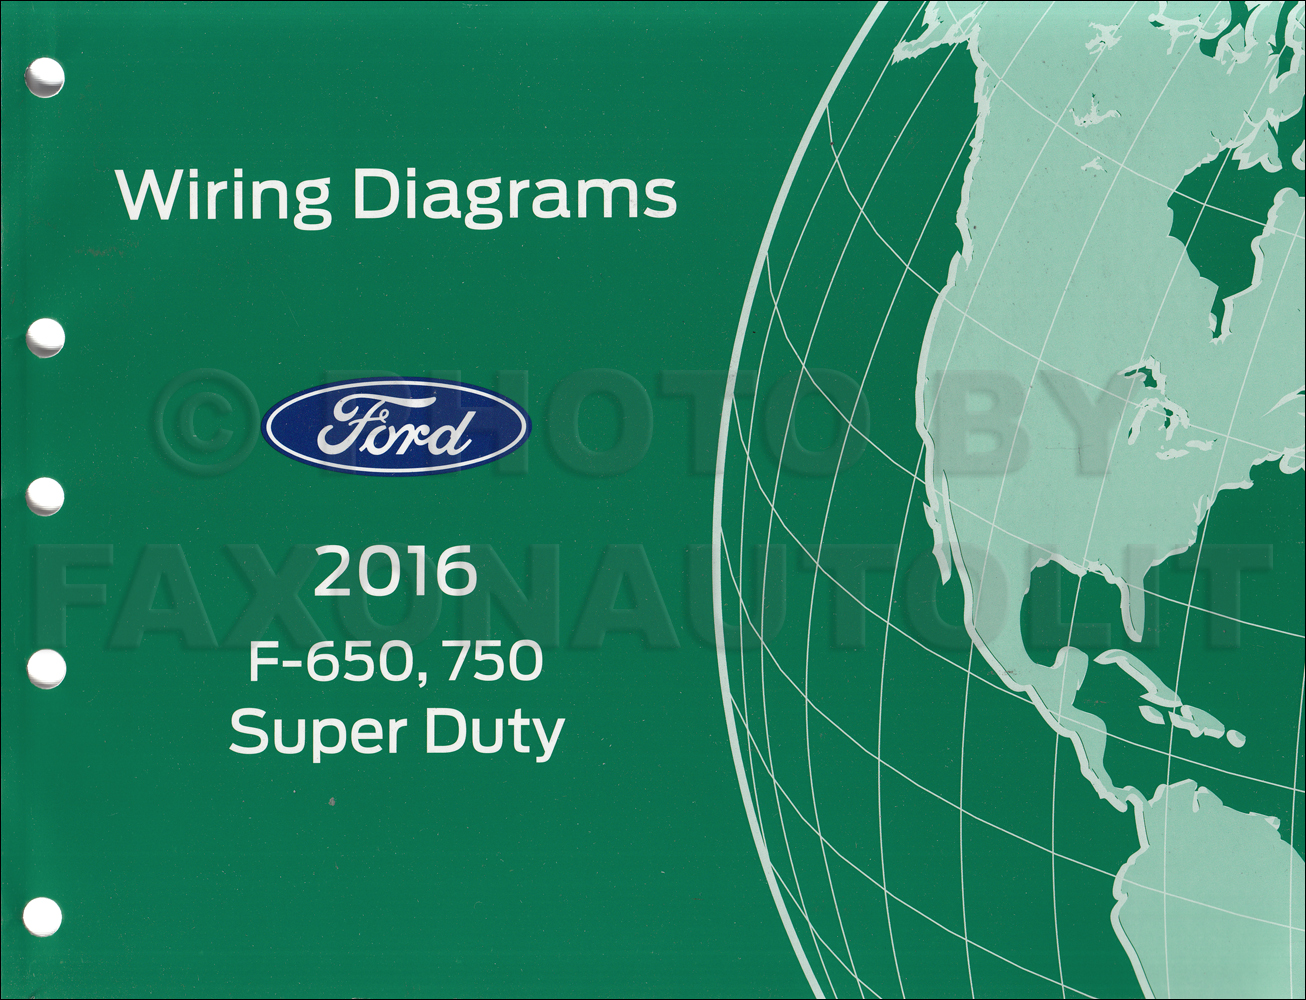 2016 Ford F 650 And F 750 Super Duty Truck Wiring Diagram Manual 2004 Ford  F550 Fuse Box Diagram Ford F 650 Wiring Diagram